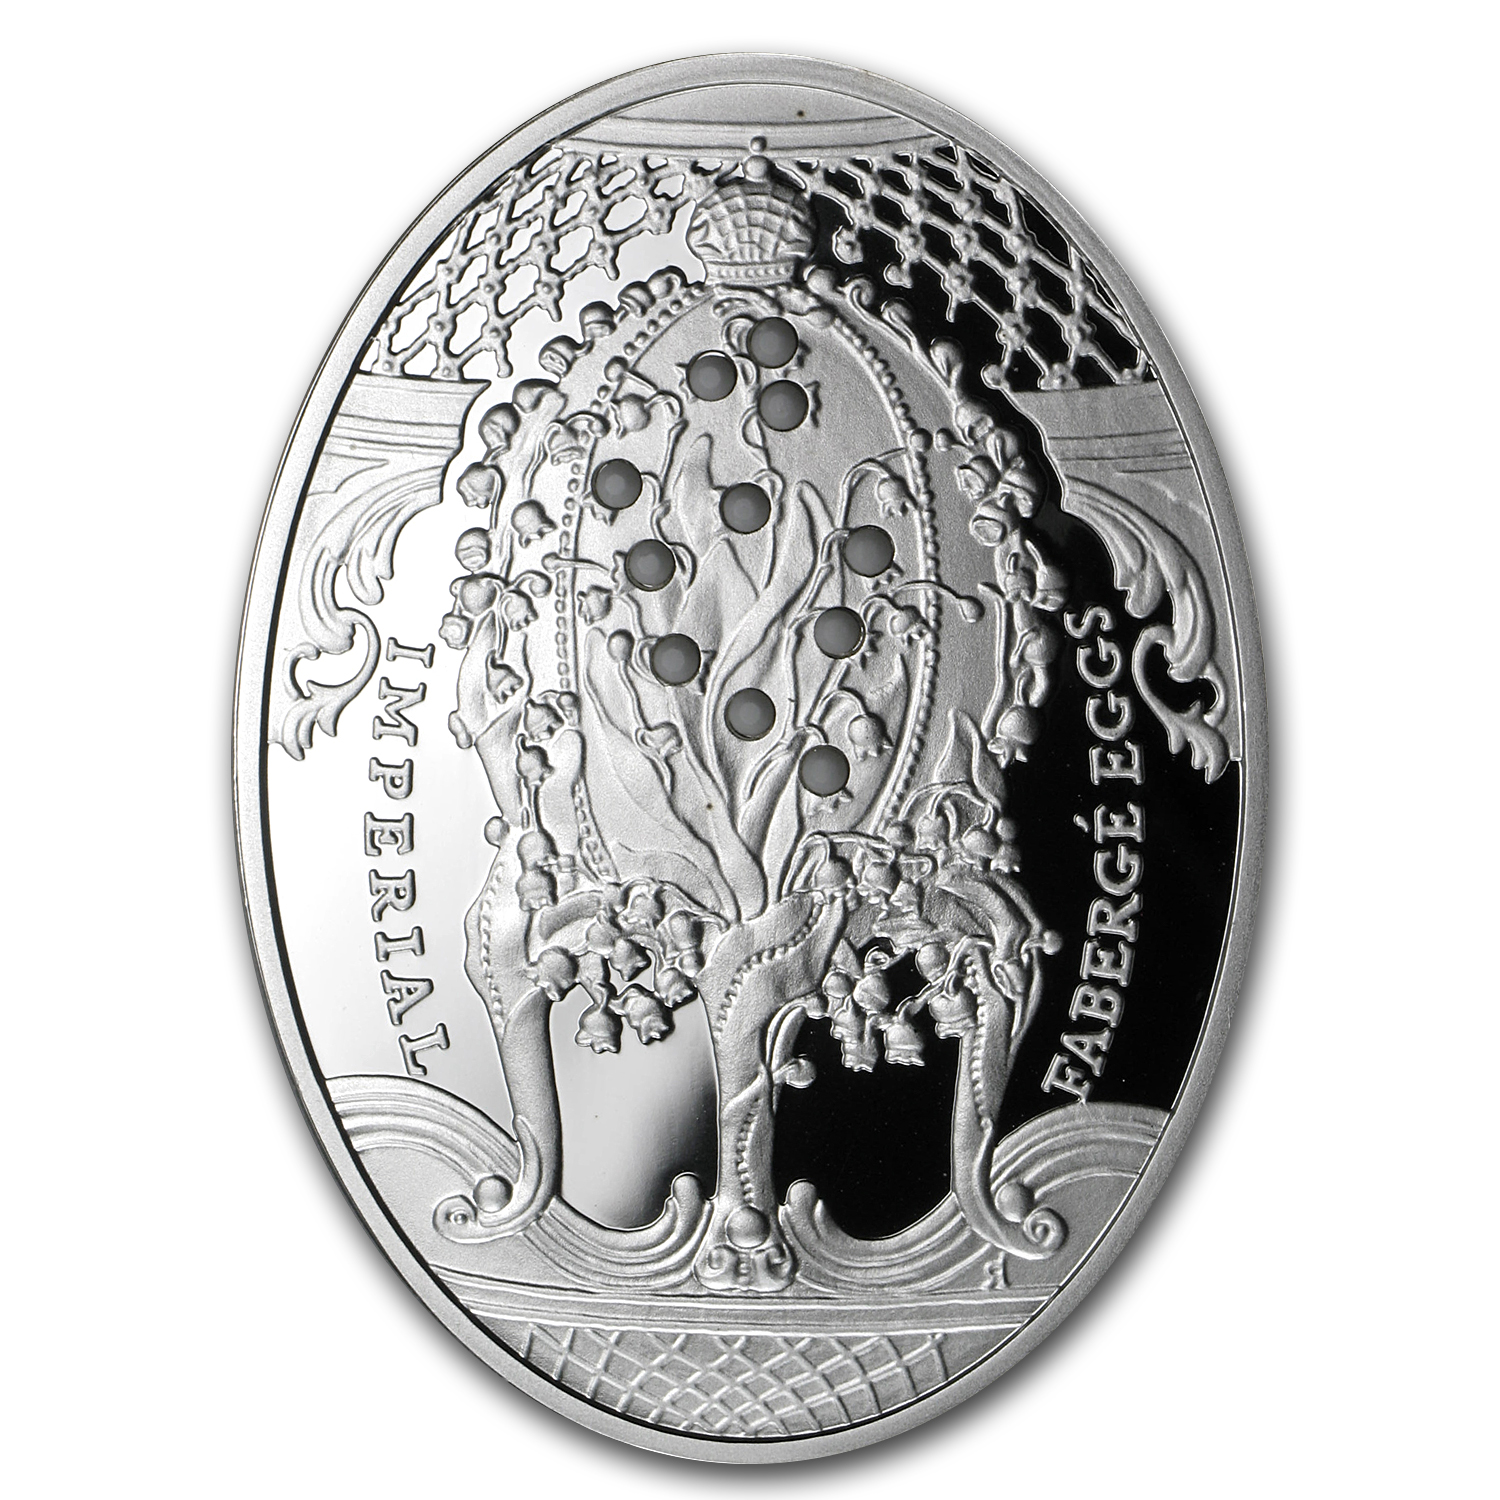 Niue 2010 Silver $2 Imperial Faberge Eggs - Lilies of the Valley